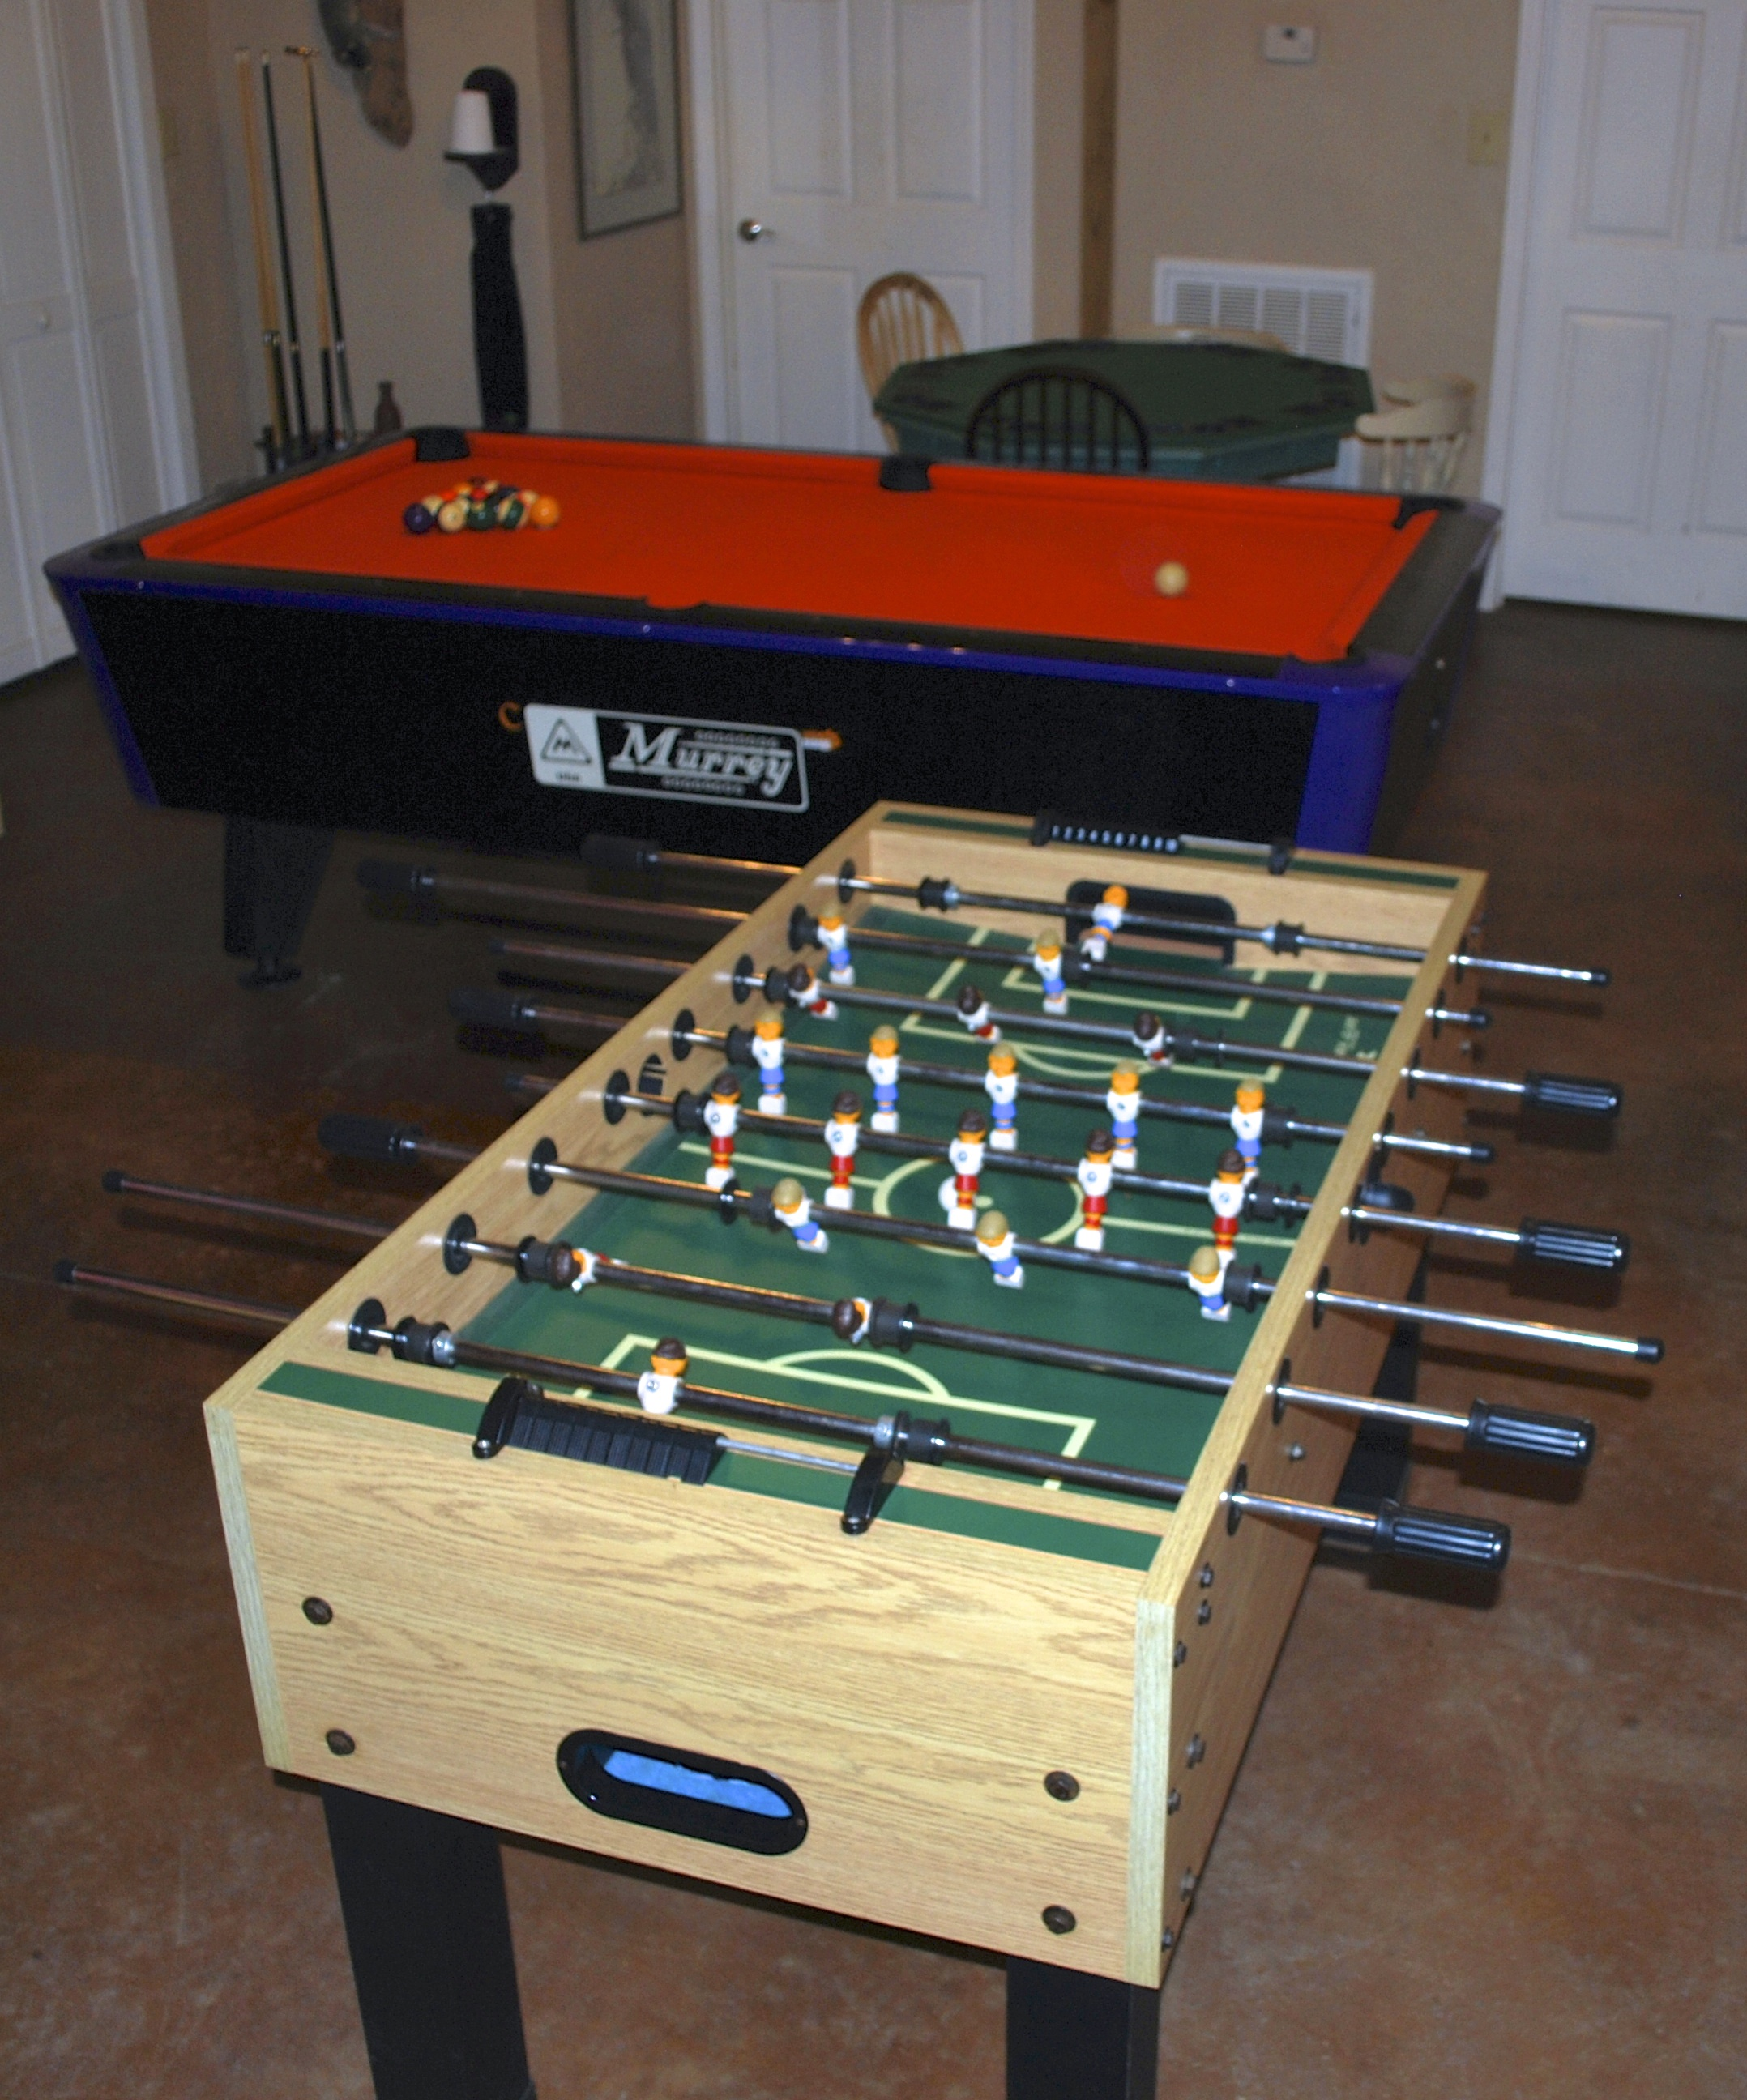 RBL Game Room